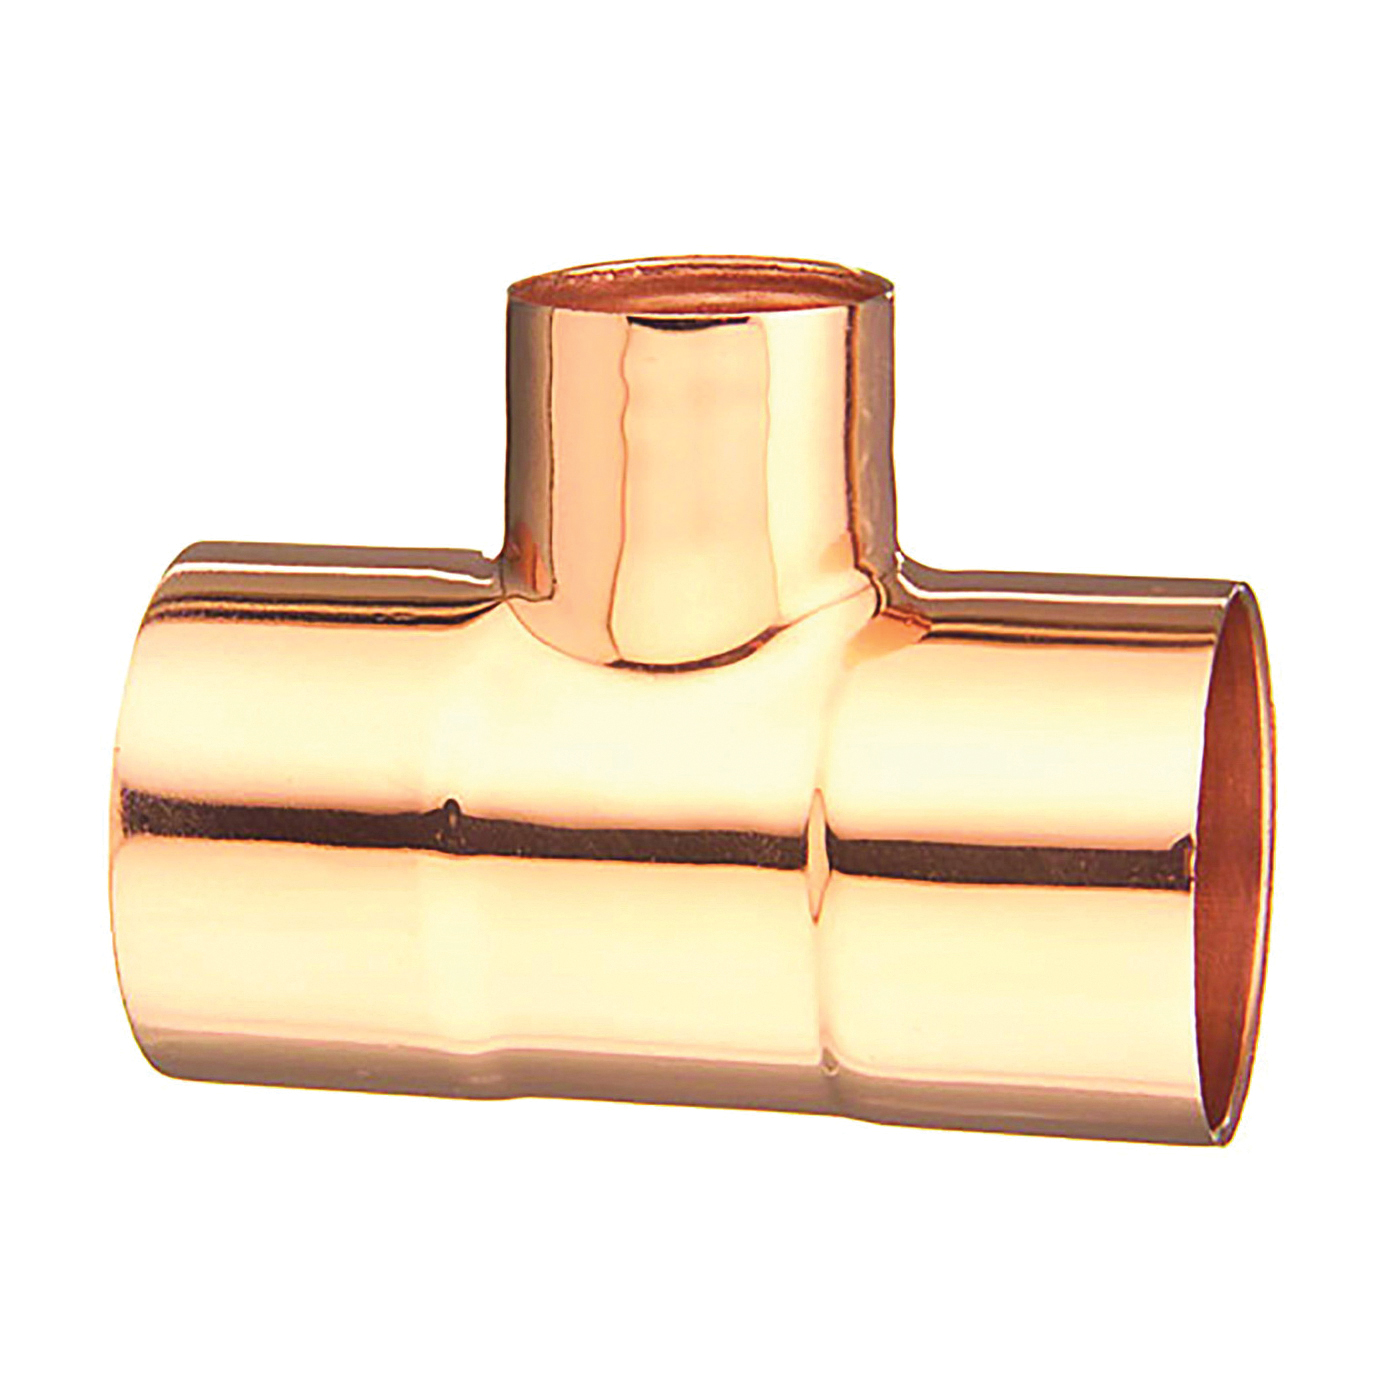 Picture of EPC 111R Series 32916 Pipe Reducing Tee, 1-1/2 x 1-1/2 x 1 in, Sweat, Copper